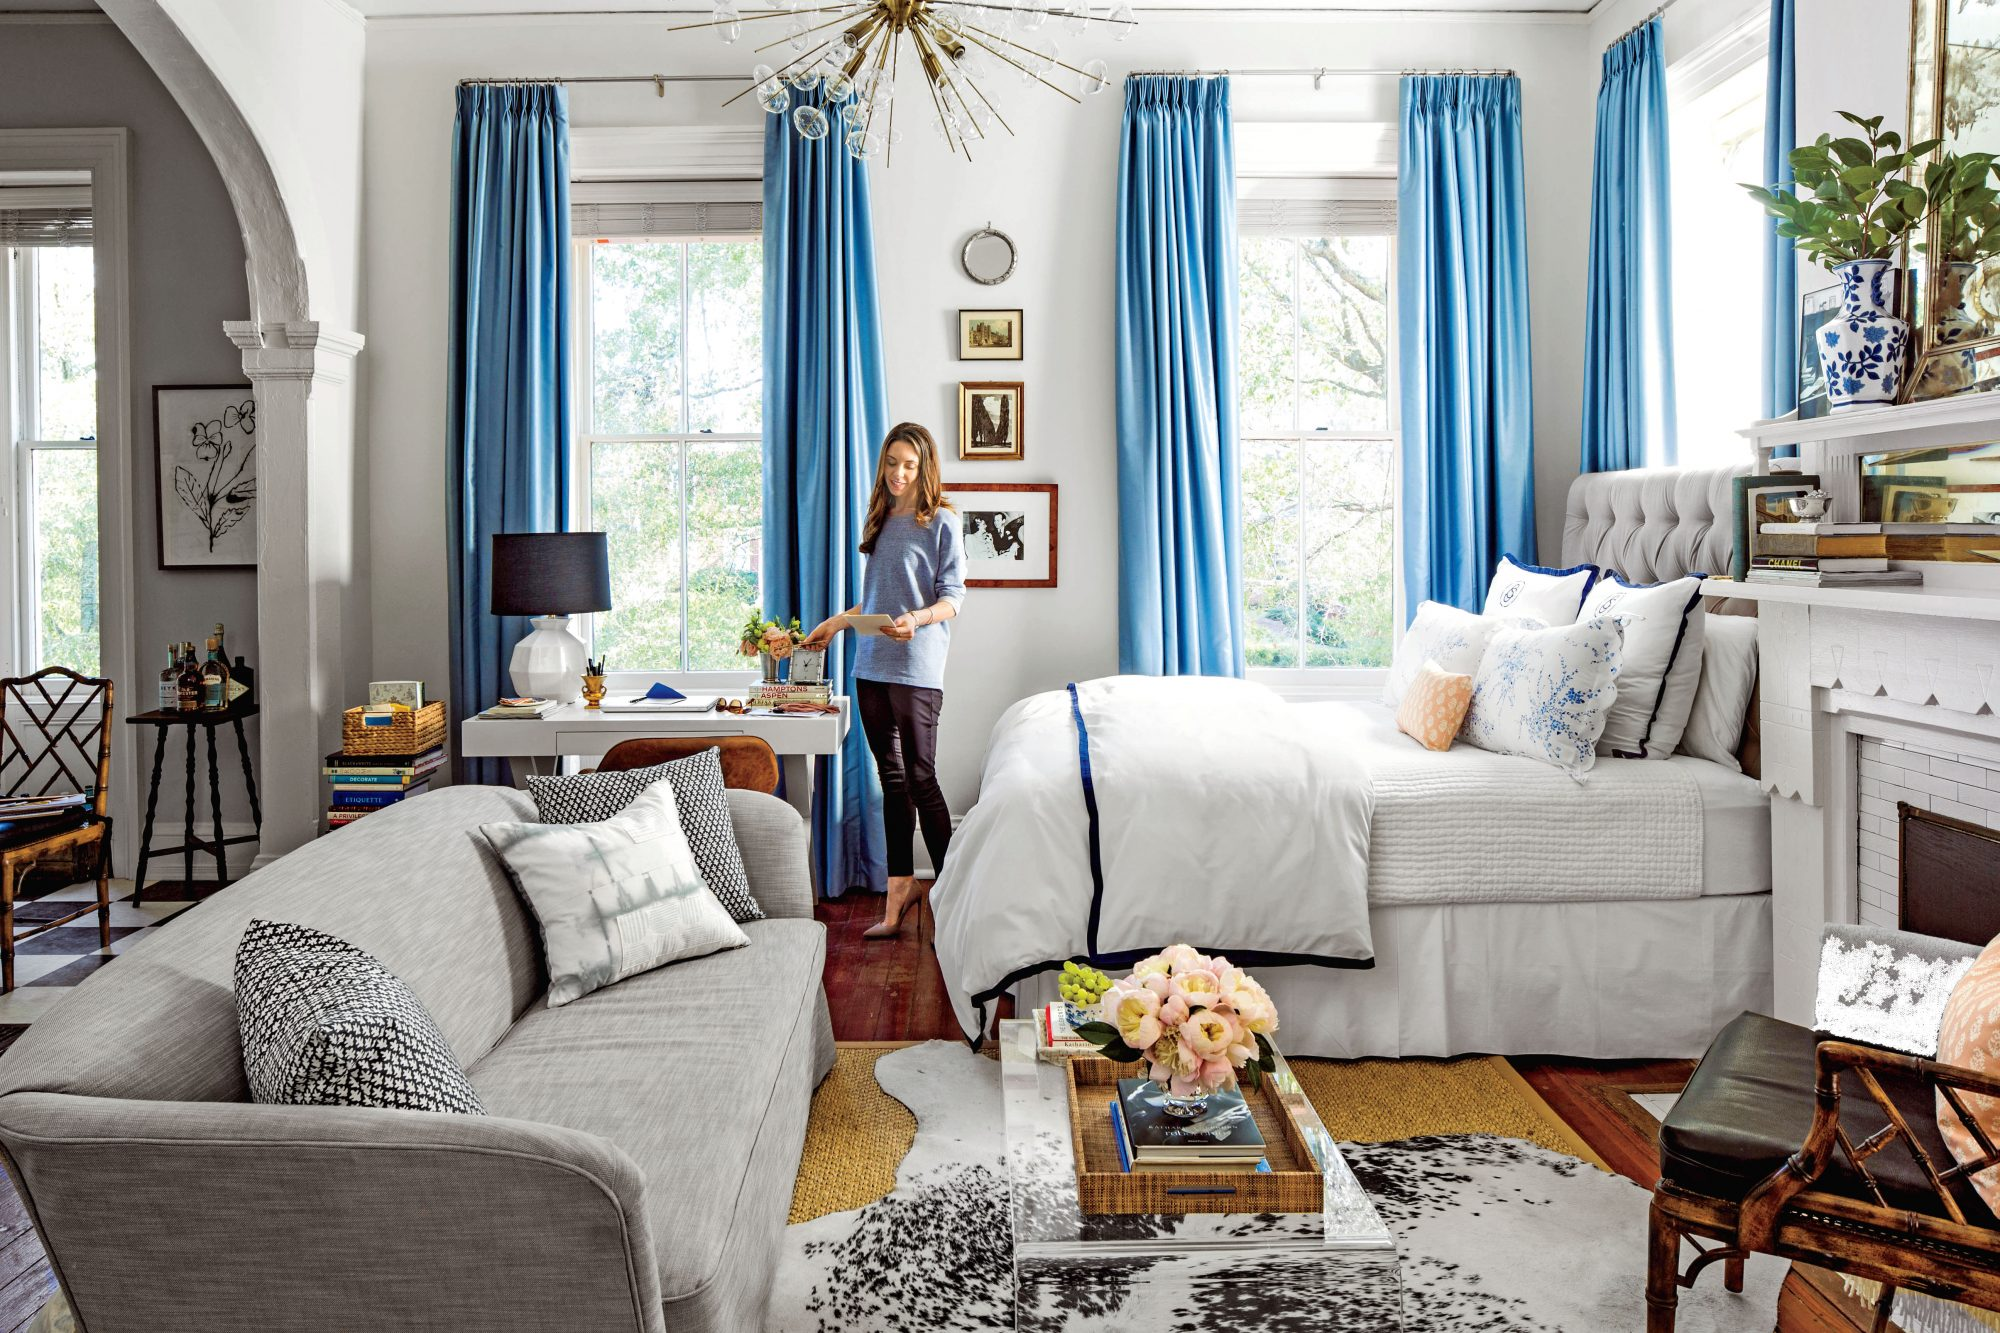 Double Rugs in Studio Apartment & 50 Small Space Decorating Tricks - Southern Living